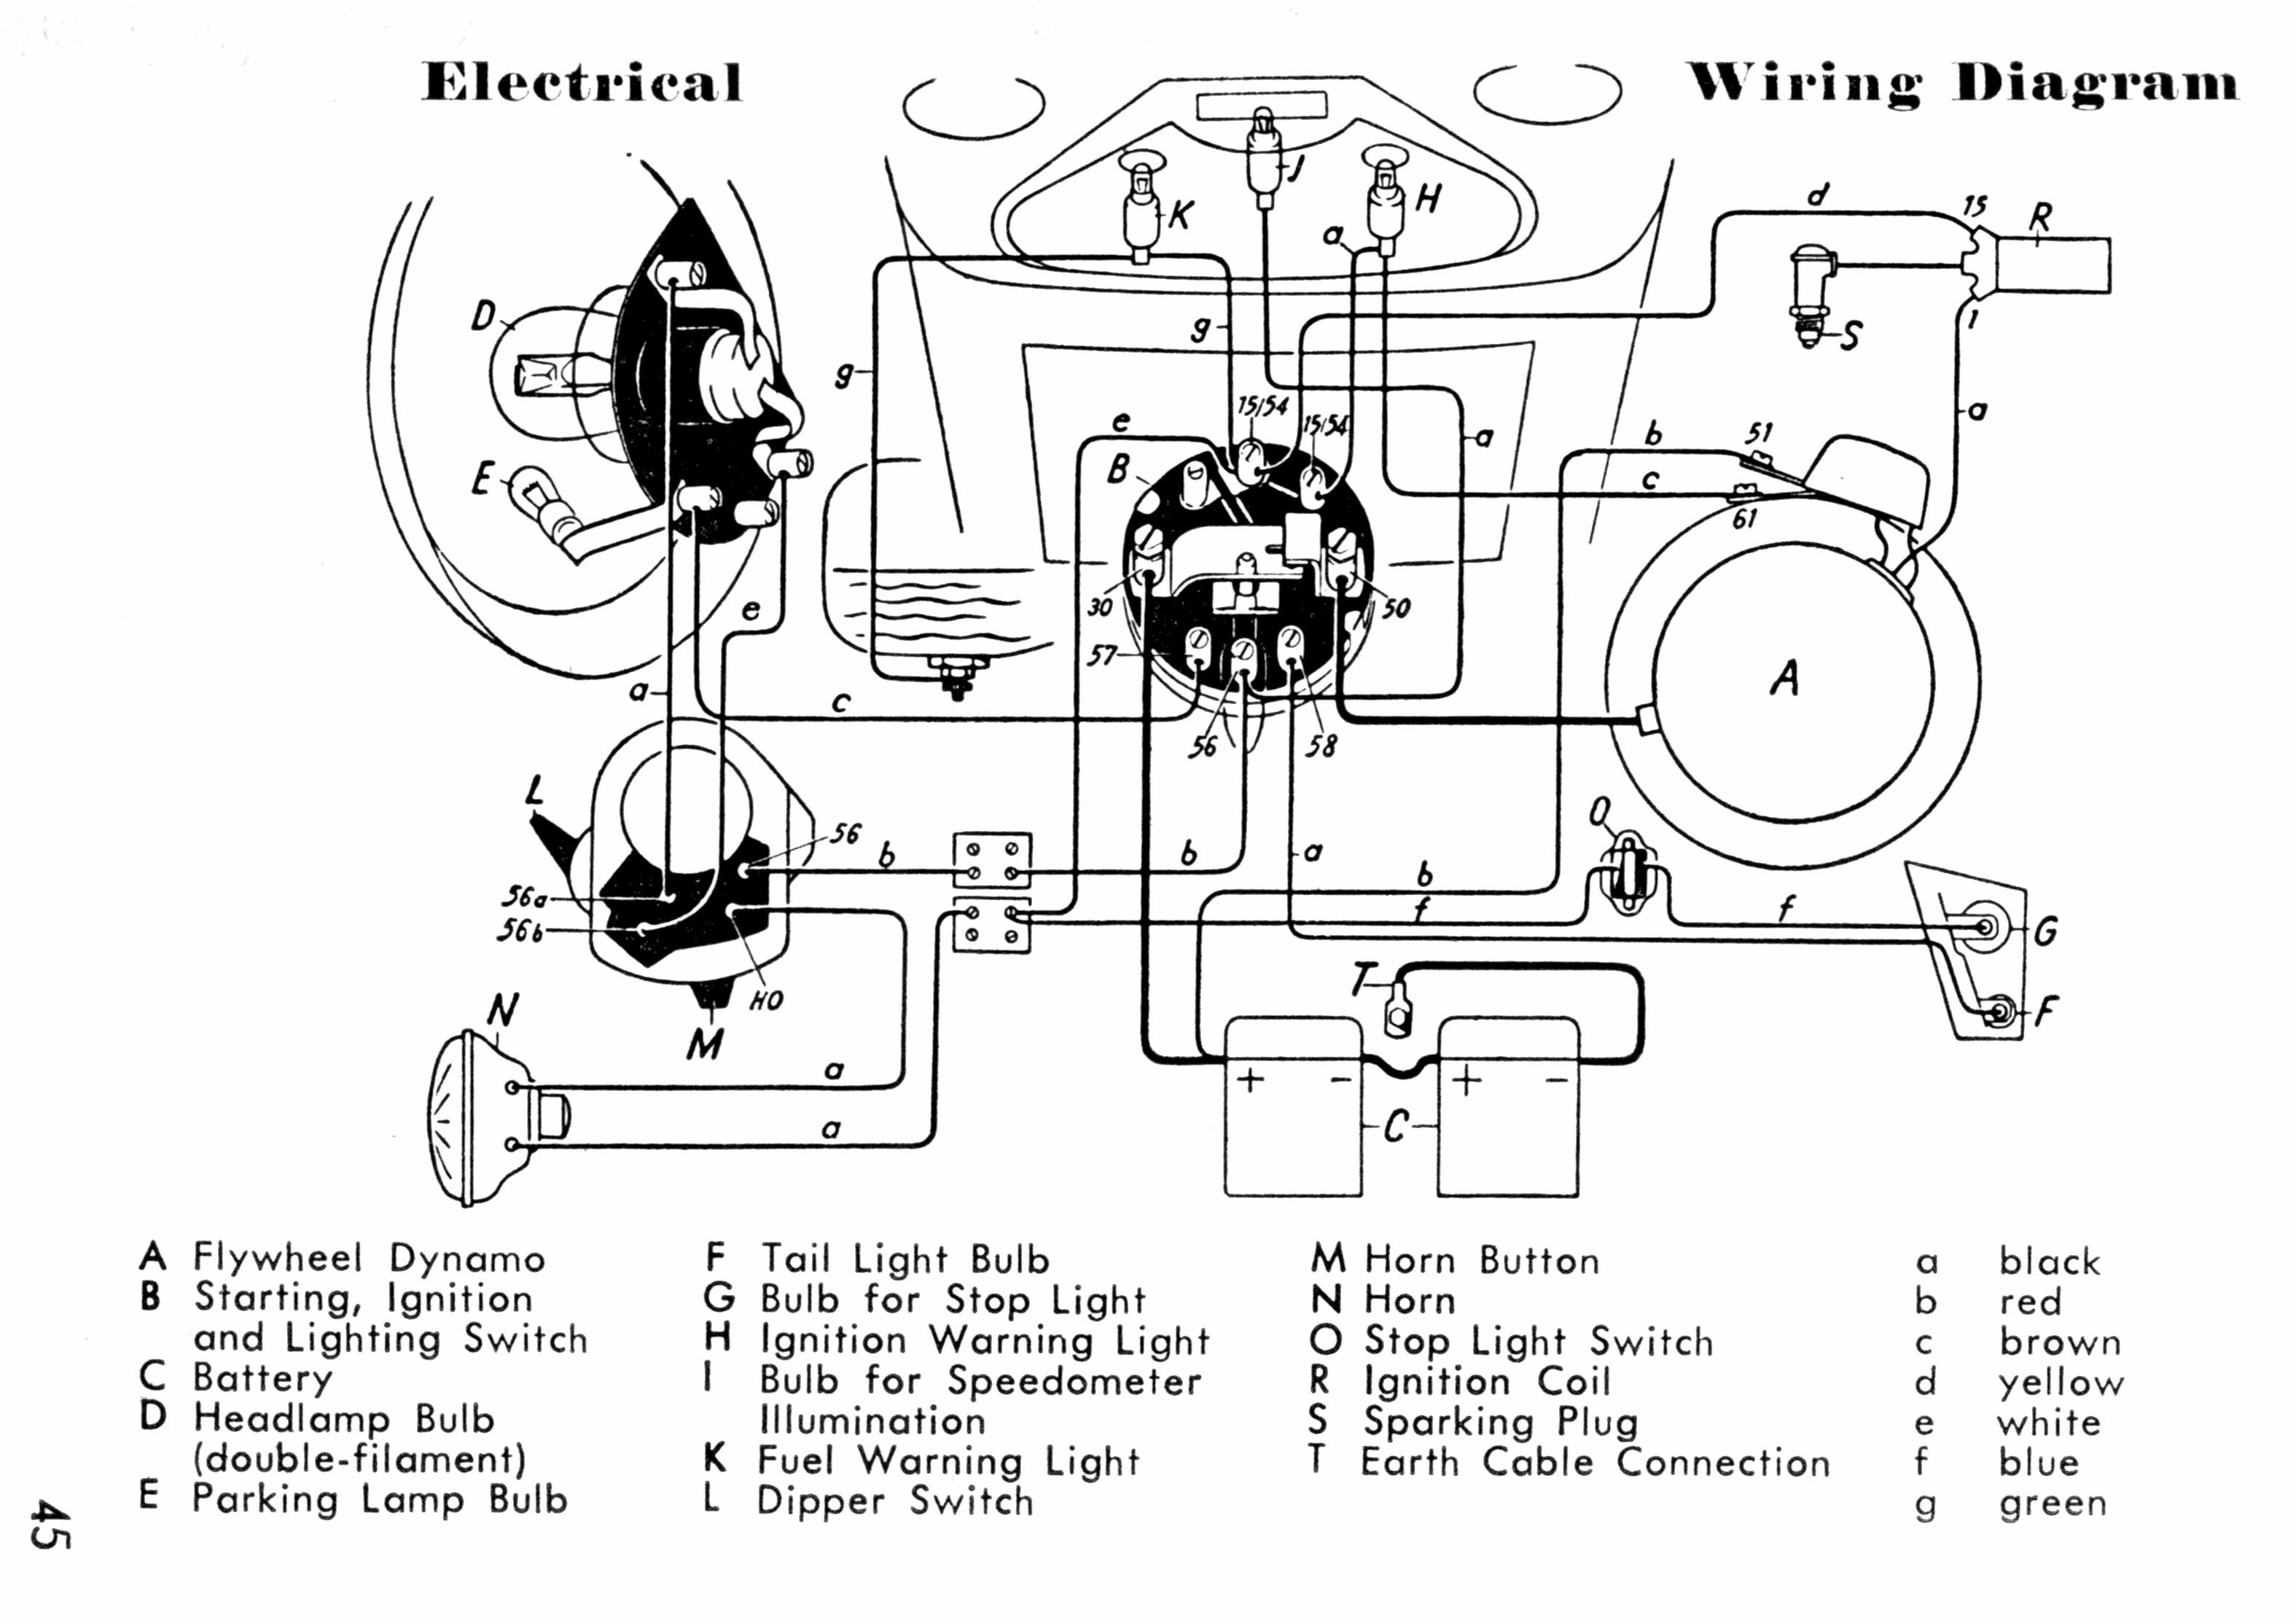 Electric Scooter Wiring Diagram Kollmorgan Motor Guide And Parts Fisher Minute Mount 2 Wiring Diagram 24 Volt Electric Scooter Wiring Diagram Moter My 1018